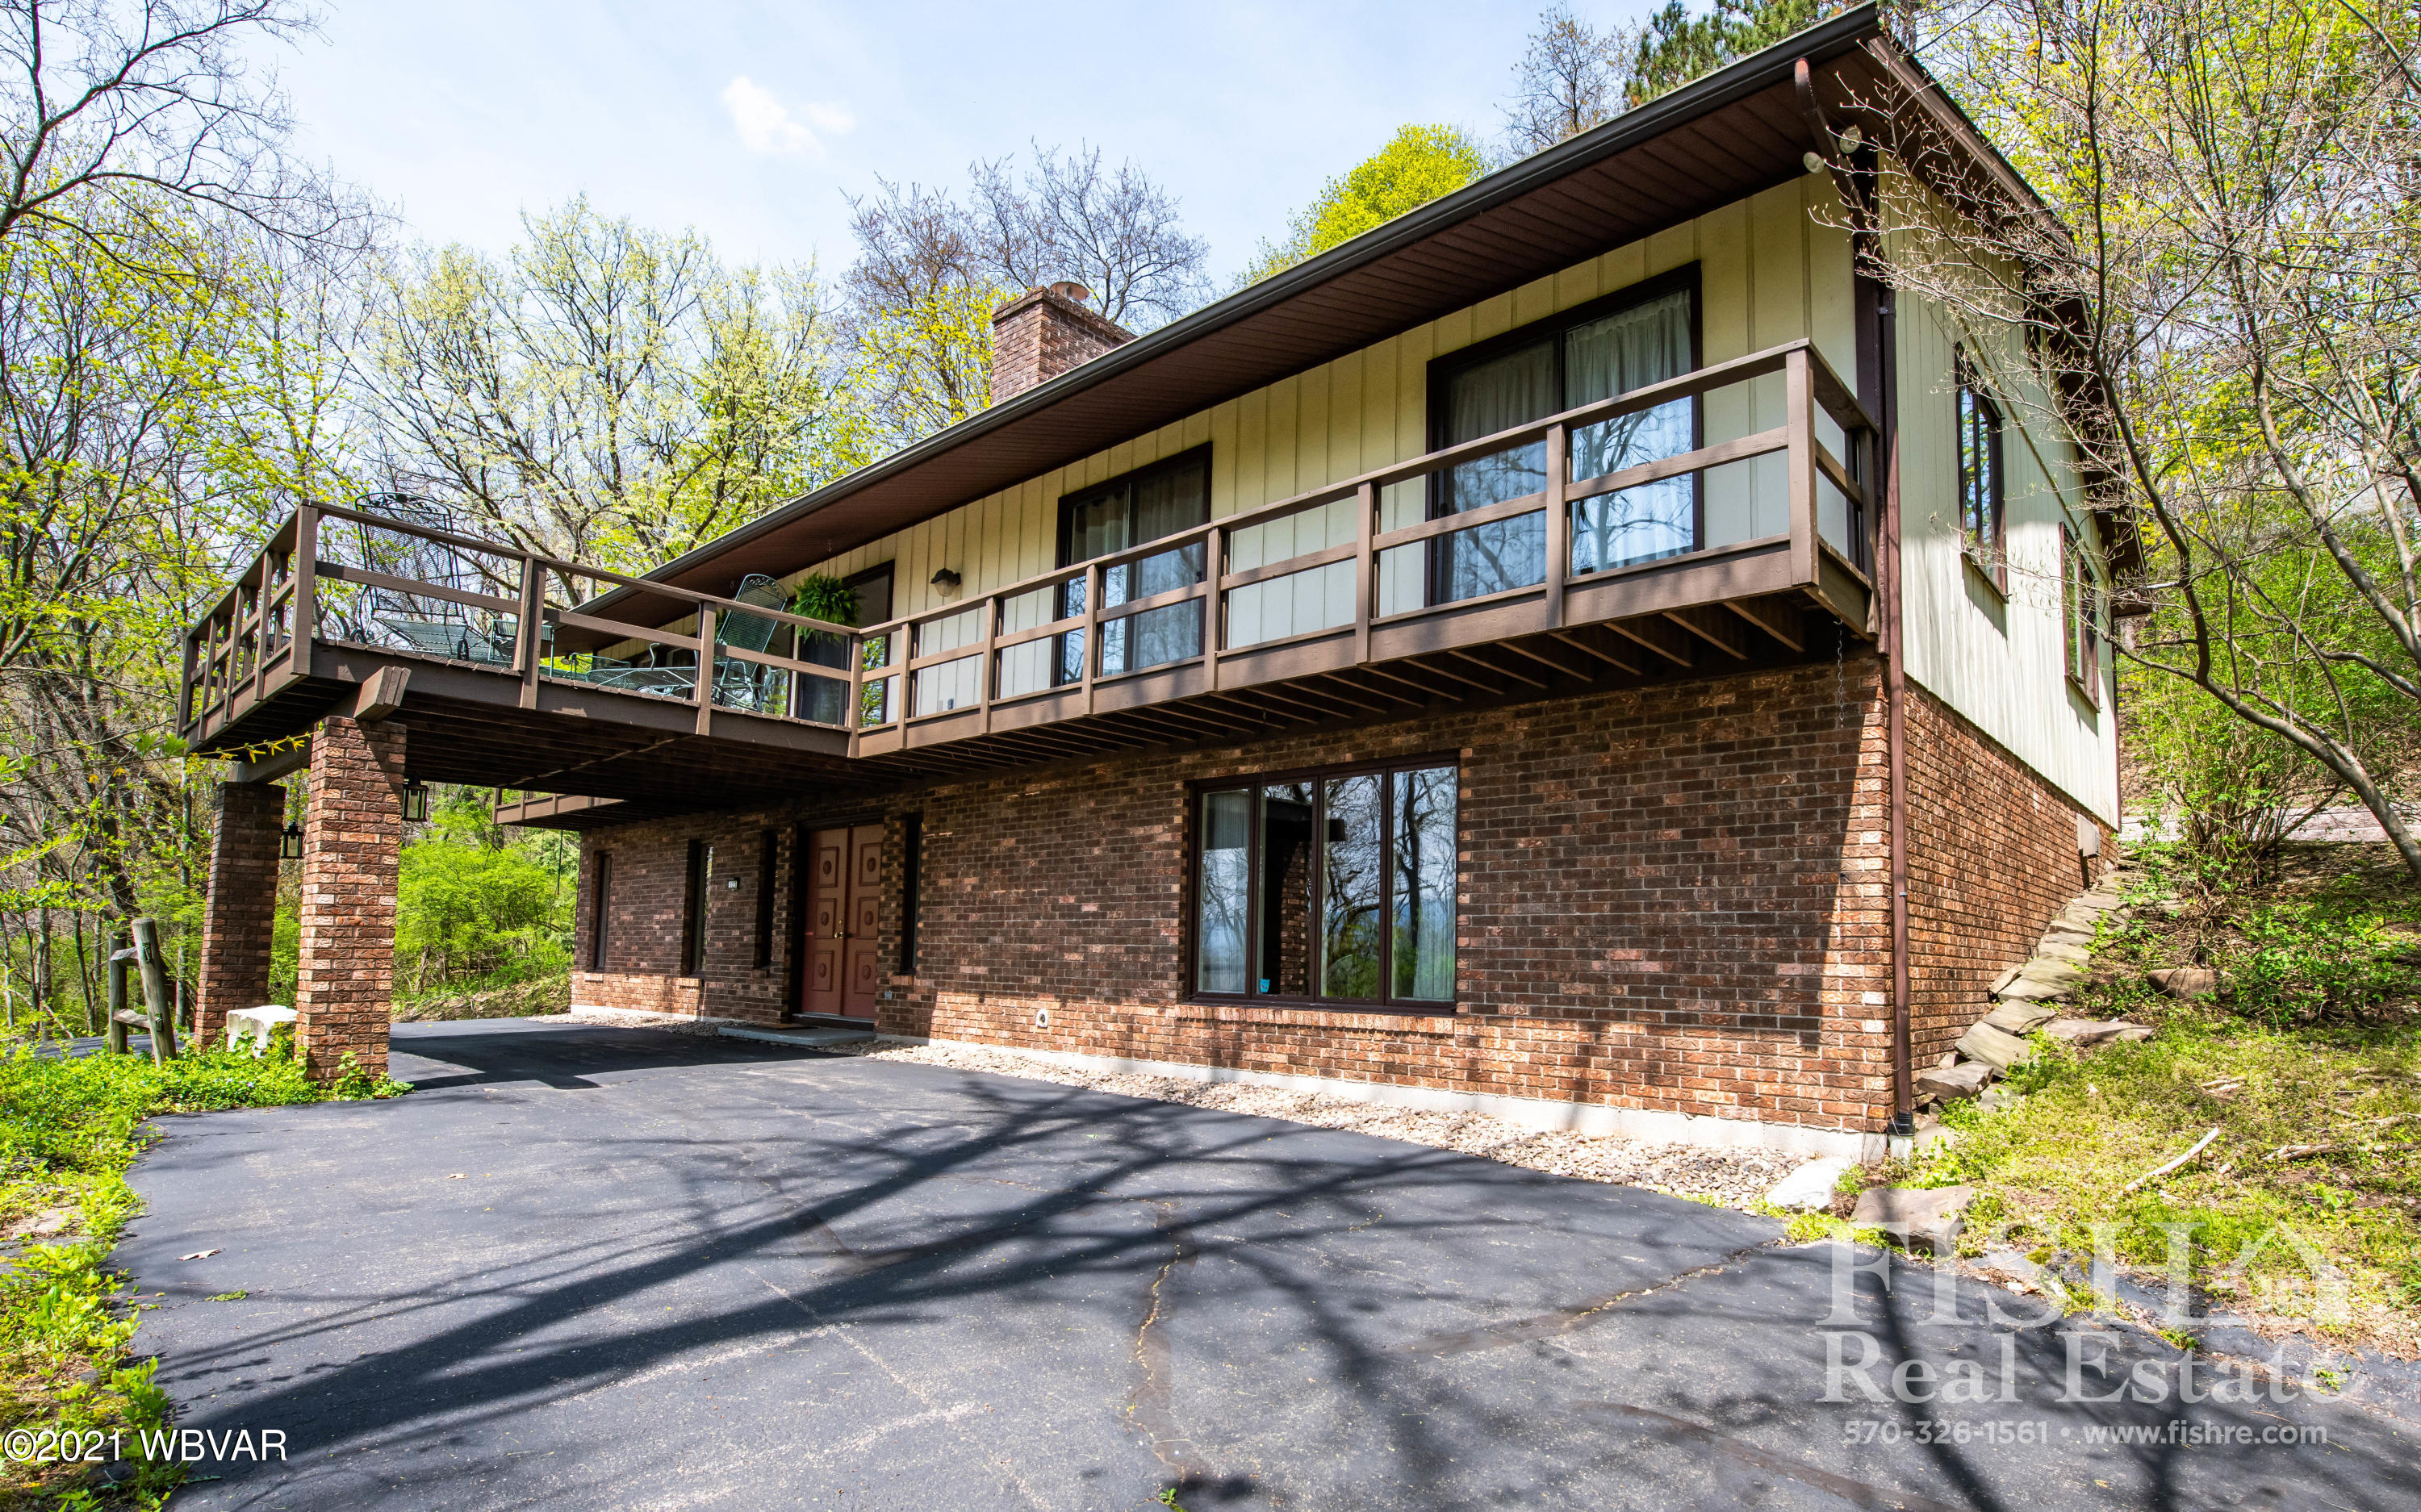 123 UPLAND ROAD, Williamsport, PA 17701, 4 Bedrooms Bedrooms, ,3 BathroomsBathrooms,Residential,For sale,UPLAND,WB-92443